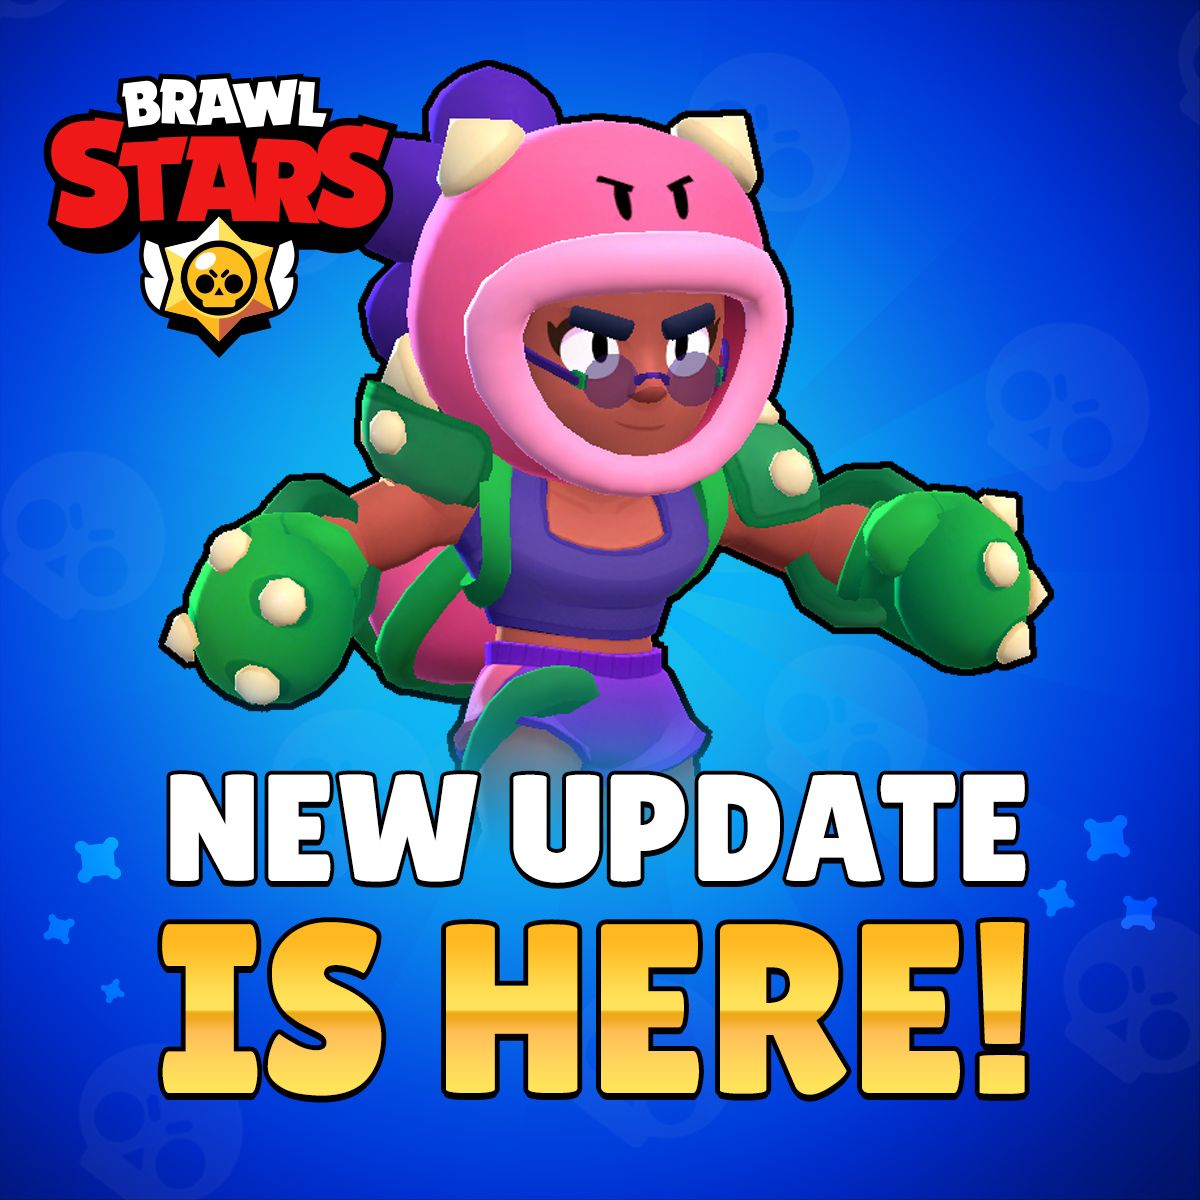 brawl strars new update colored name changes new brawler rosa - change name fortnite